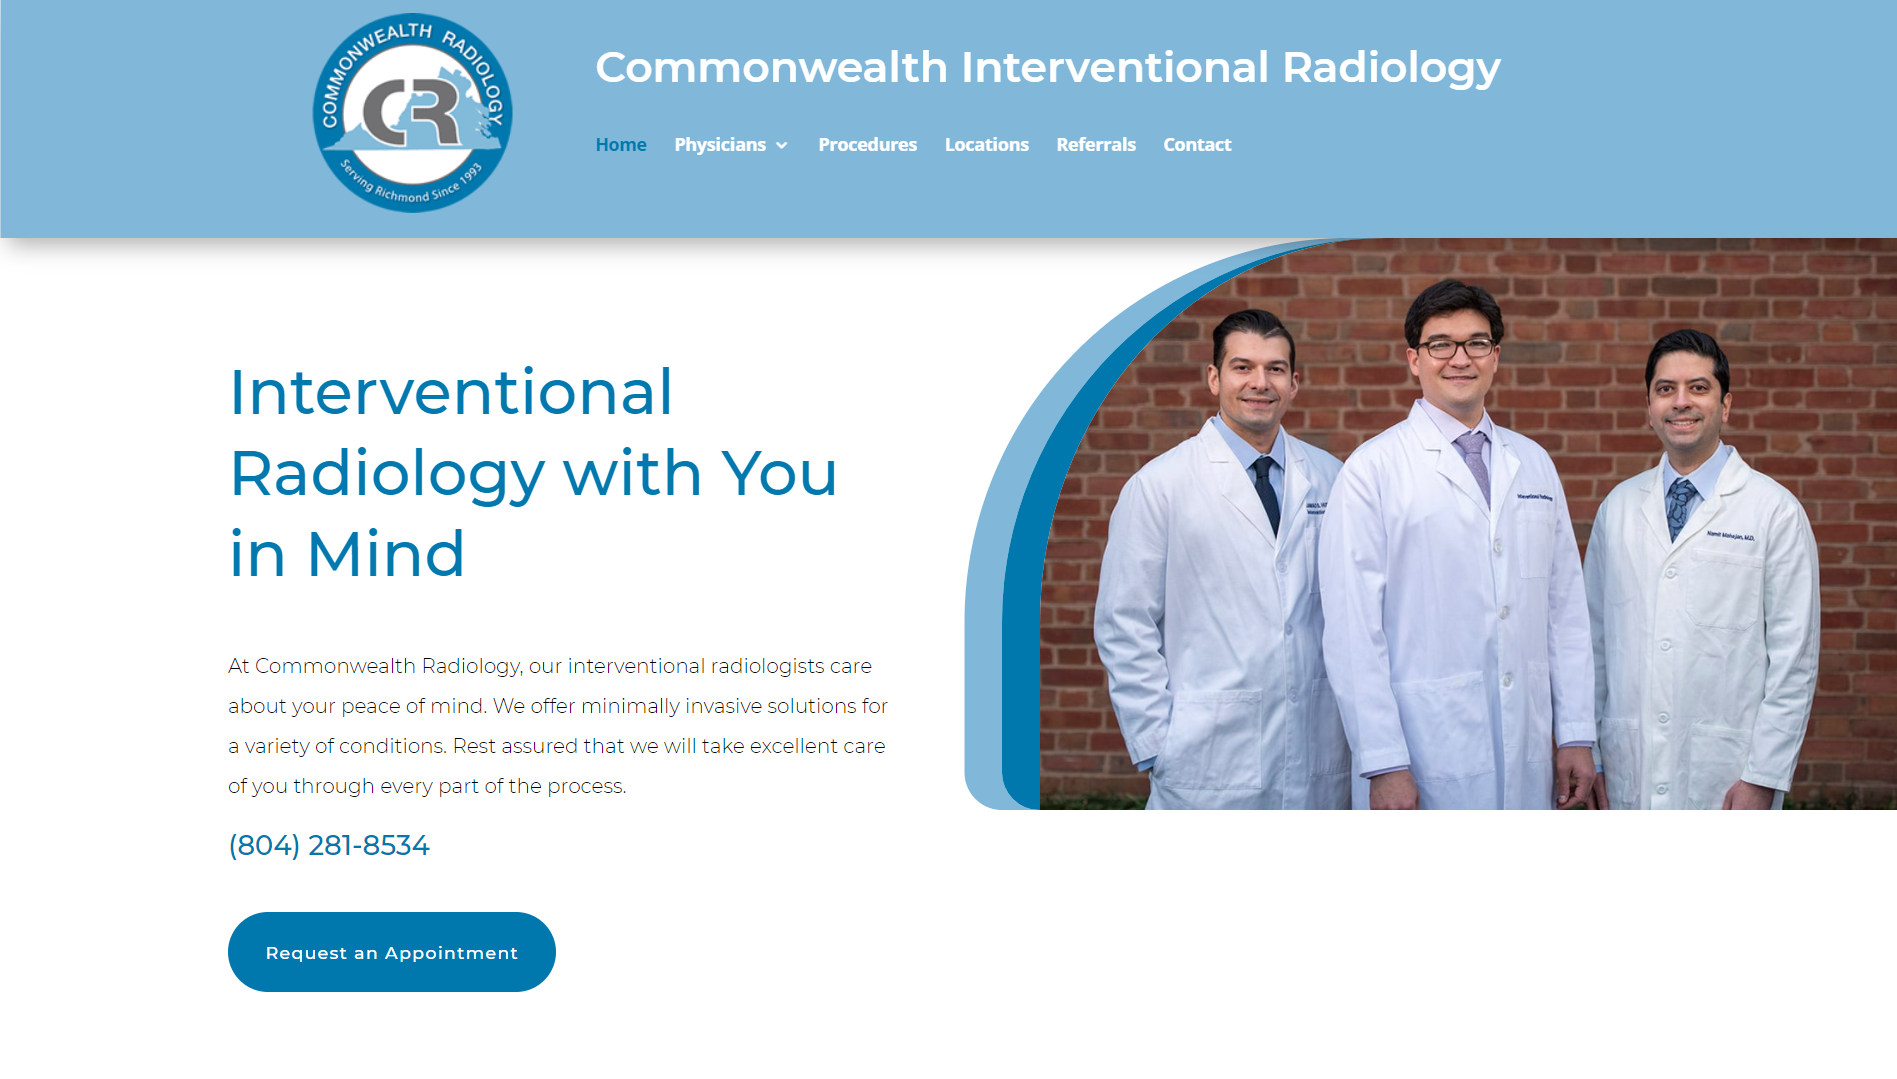 Commonwealth Interventional Radiology Screenshot